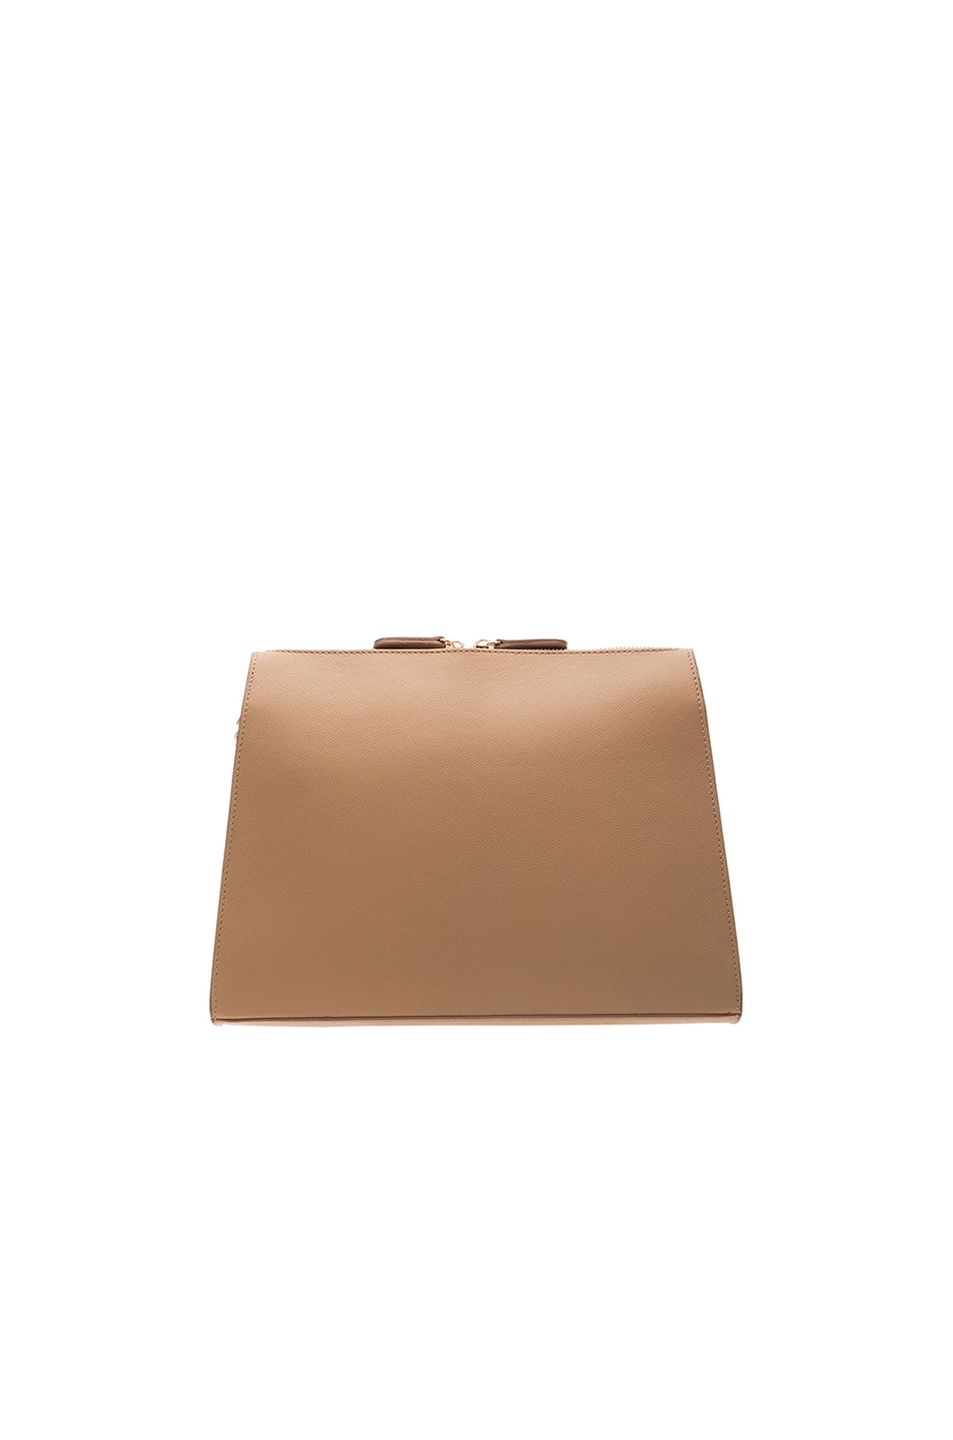 Image 3 of A.P.C. Edith Bag in Beige Rose